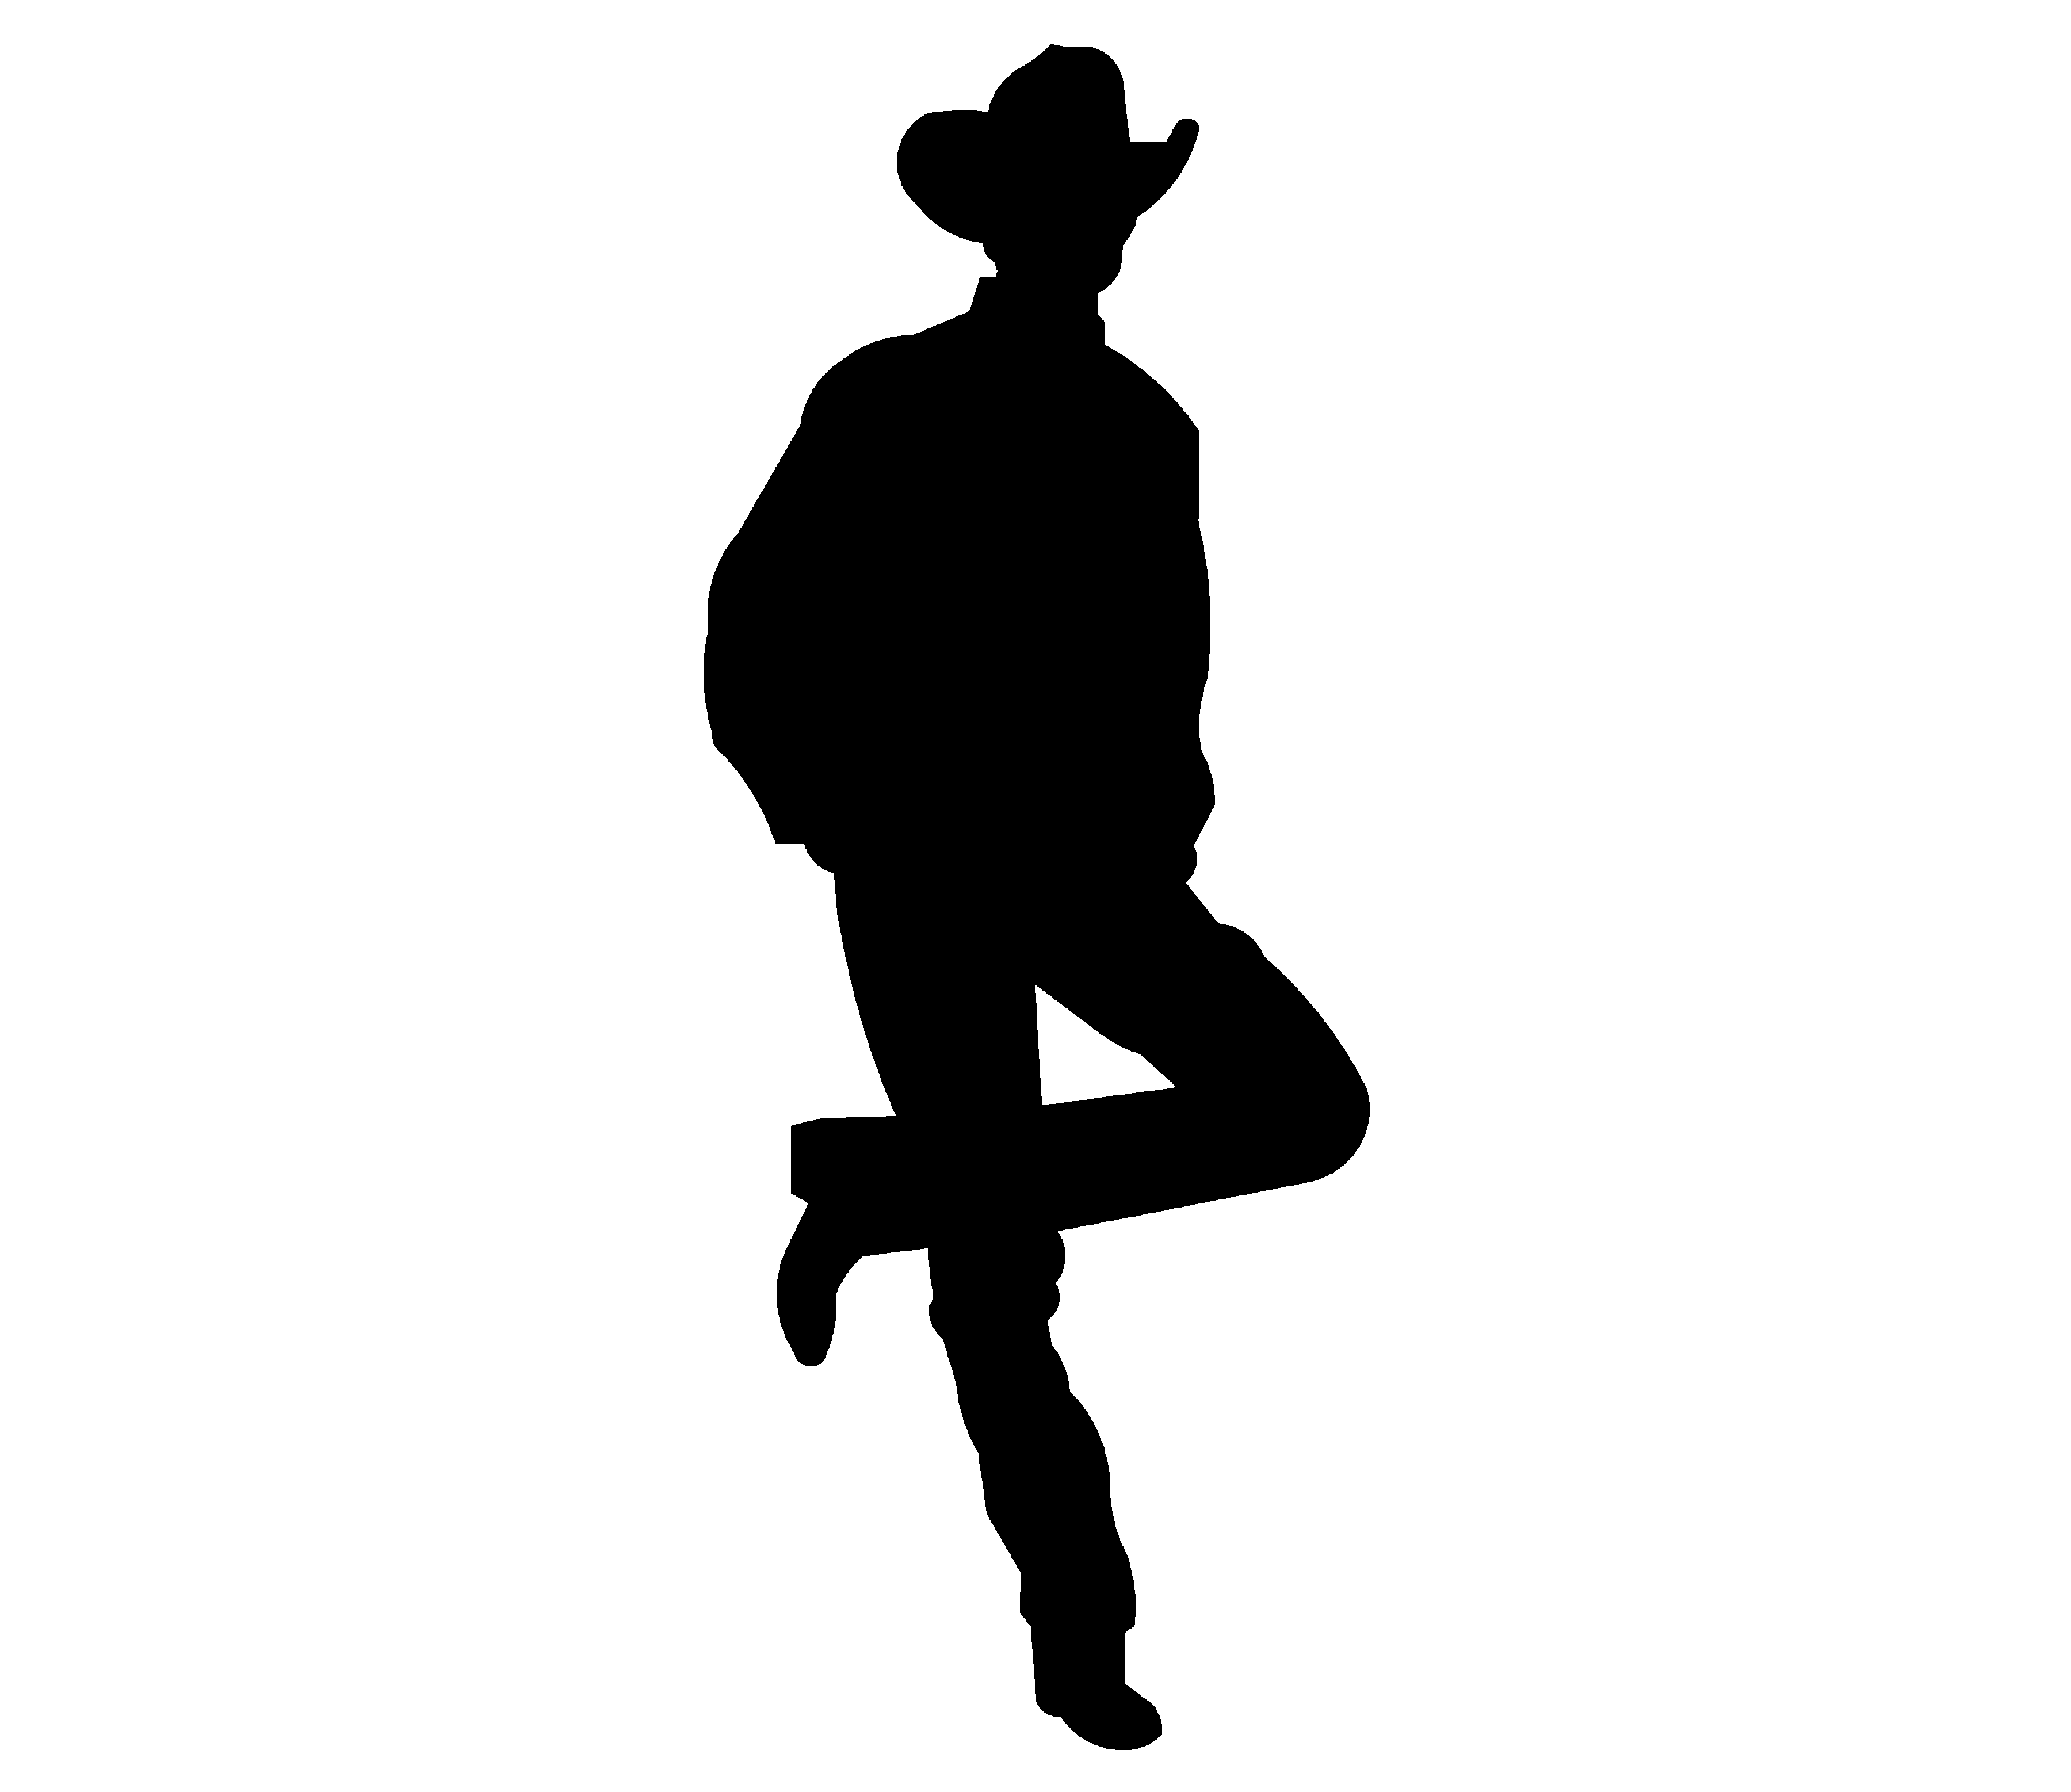 Cowboy silhouette patterns free clipart clipart transparent stock Cowboy Silhouette | Free Download Clip Art | Free Clip Art | on ... clipart transparent stock